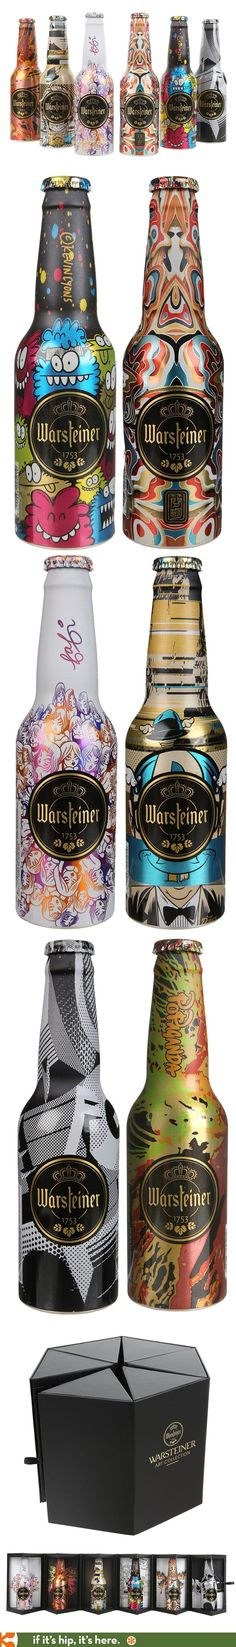 The 2014 Warsteiner Art Beer Collection.  Six artist designed bottles by Kevin Lyons PD